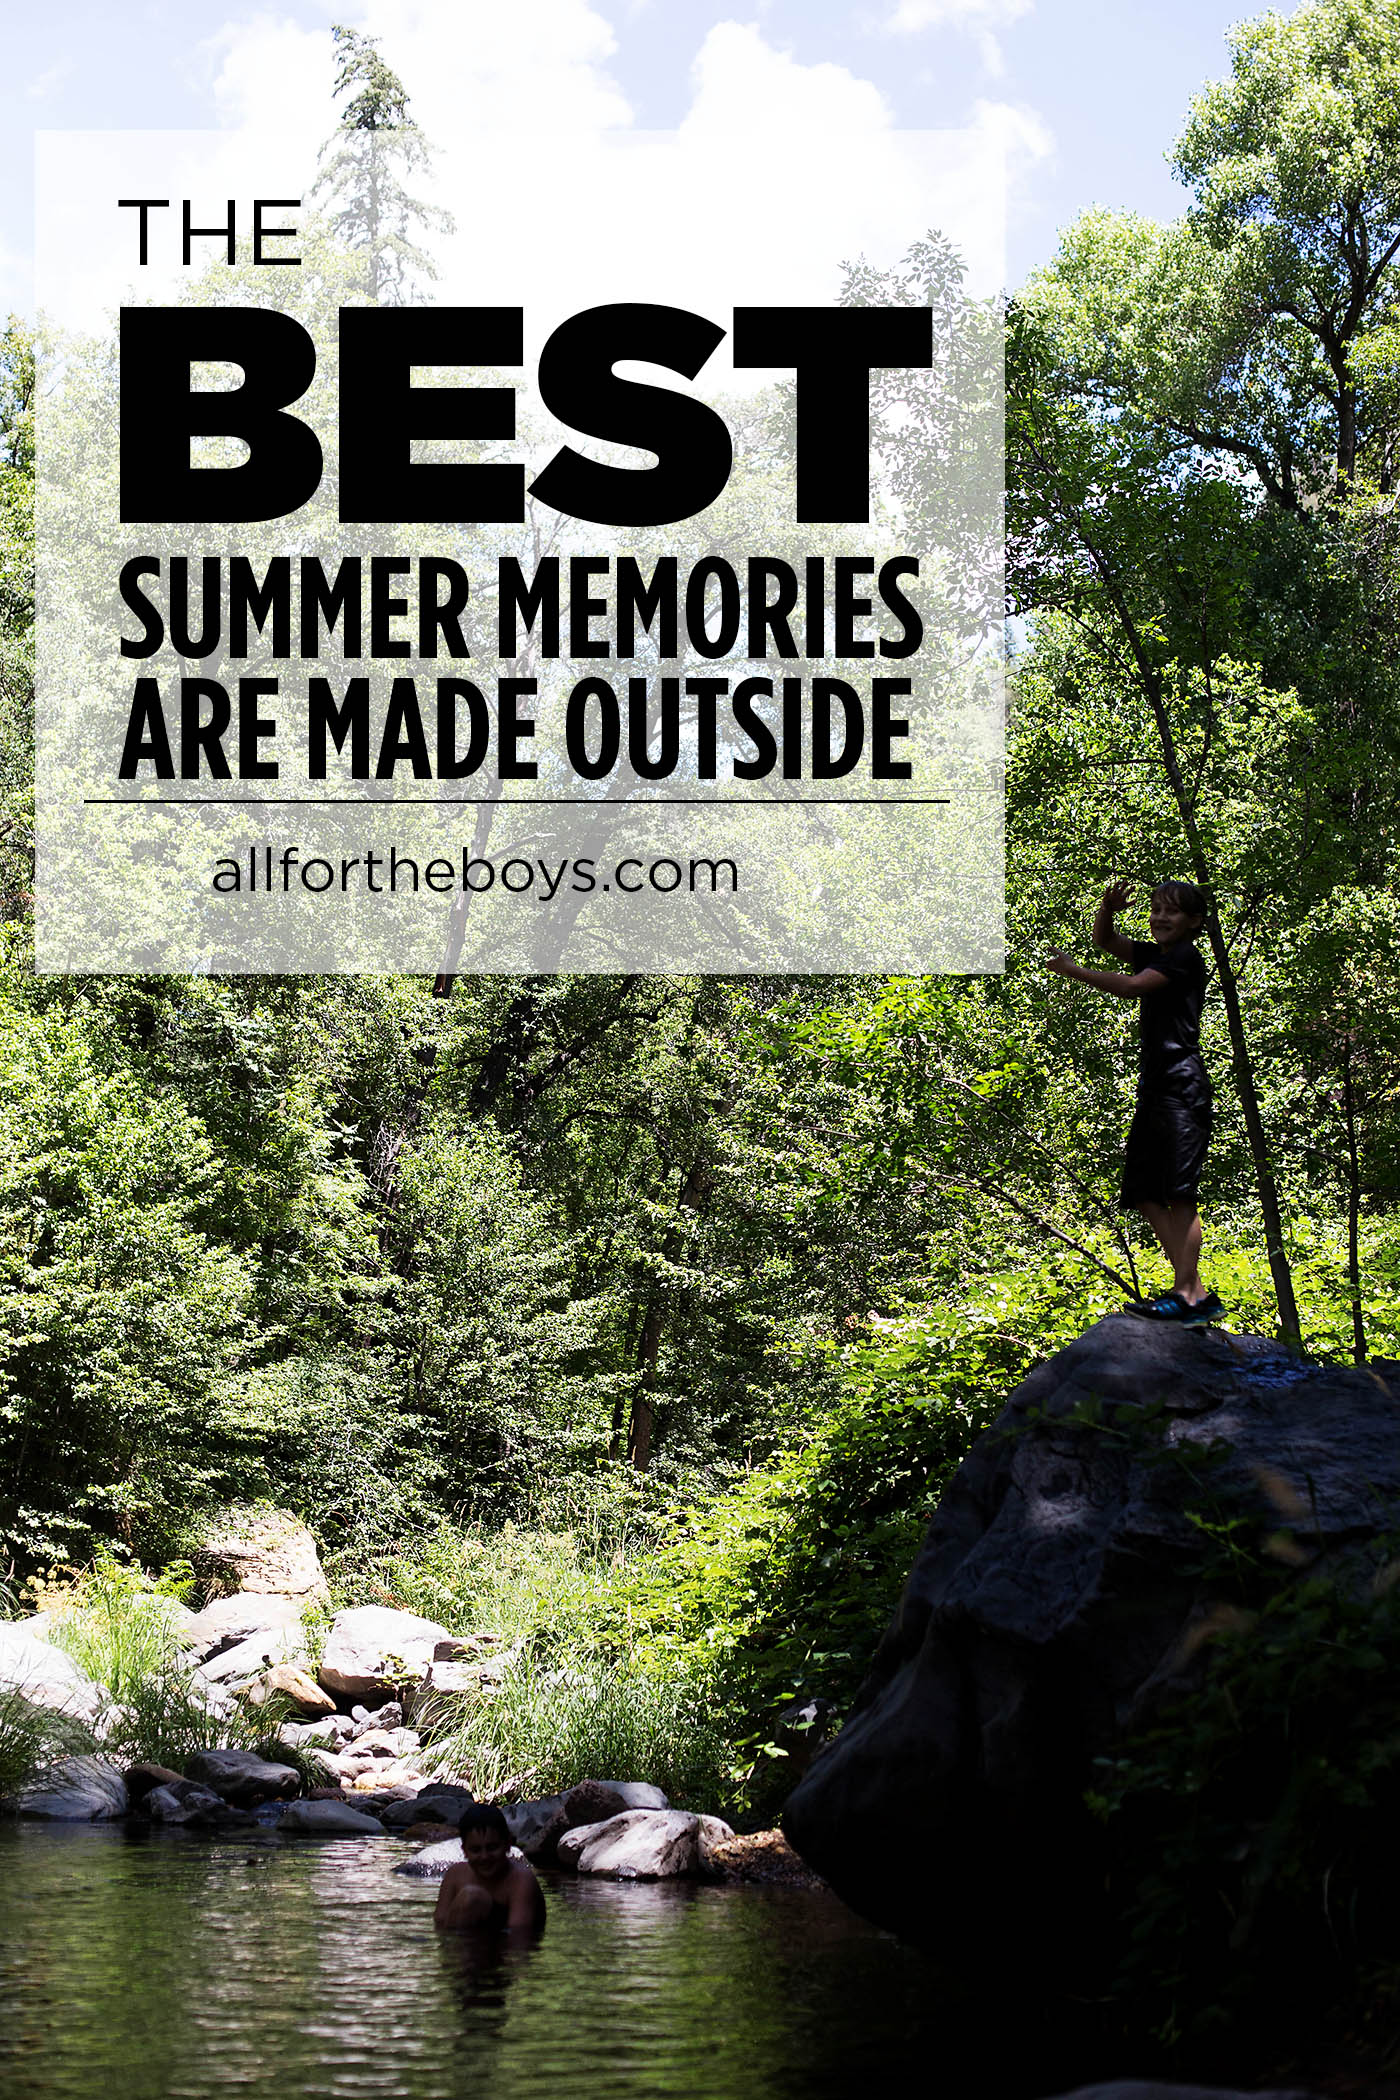 The best summer memories are made outside - at allfortheboys.com